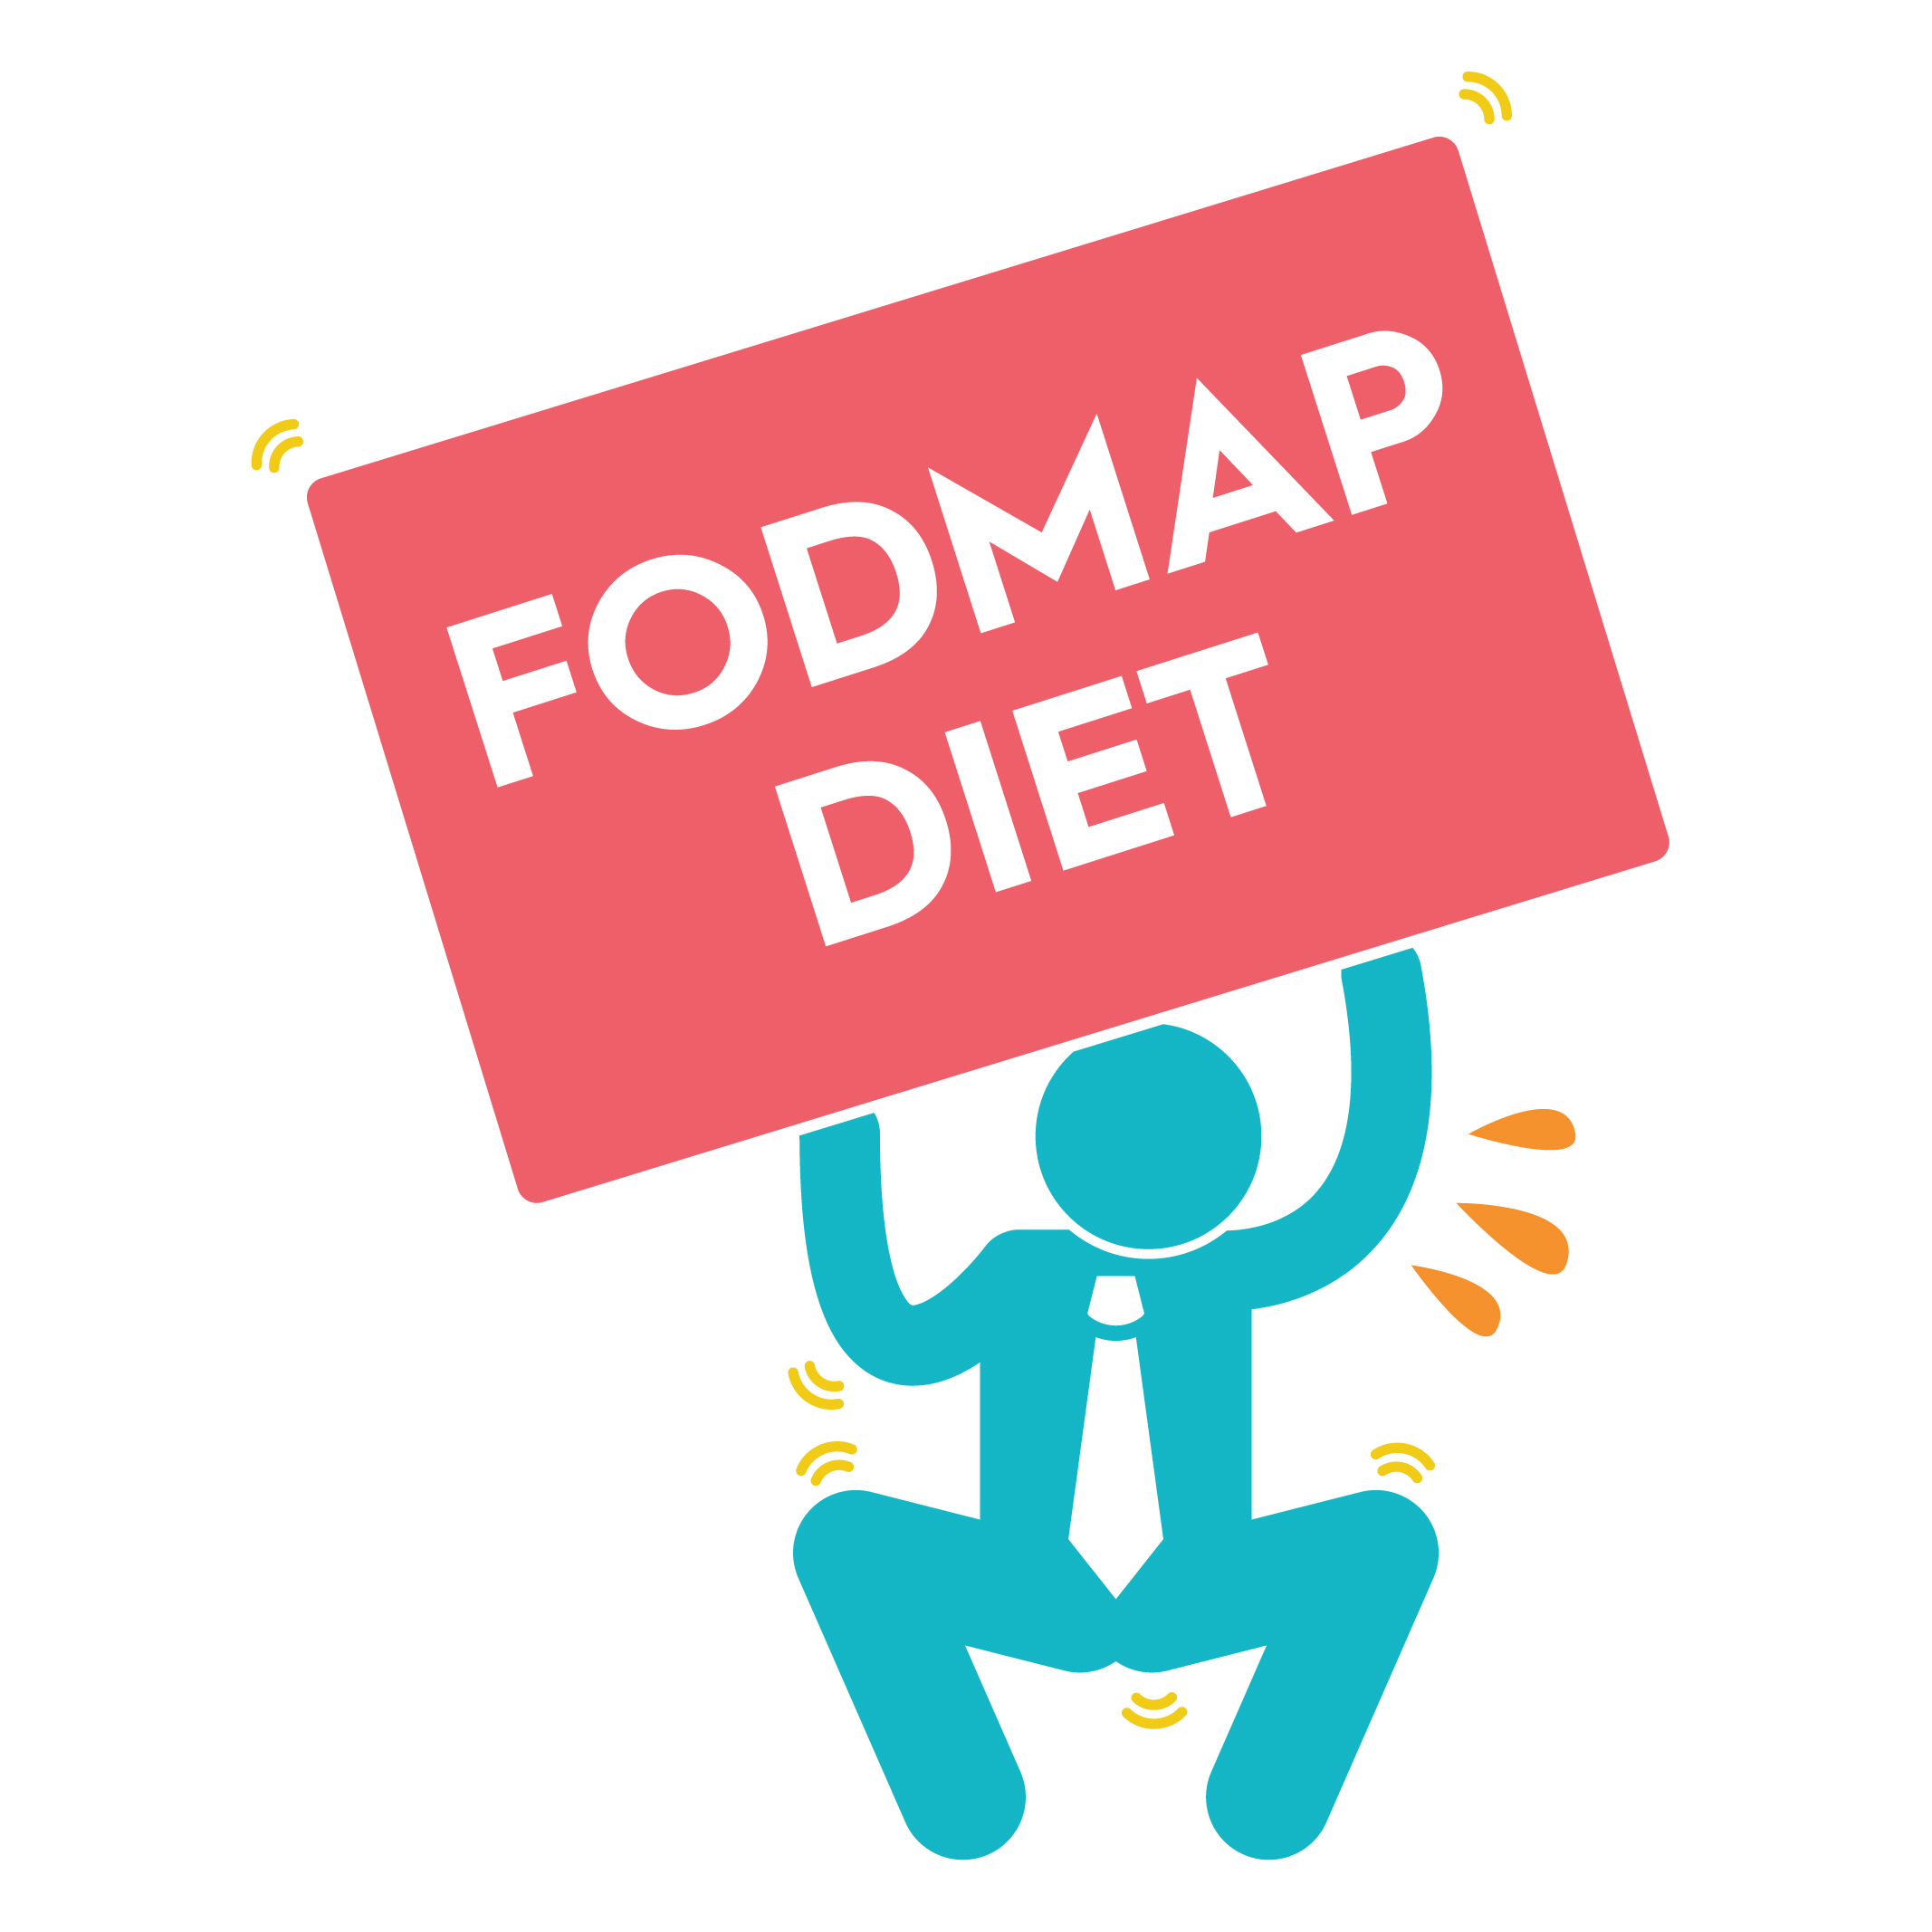 CH 8 - HOW TO DEAL WITH FODMAP DIET OVERWHELM